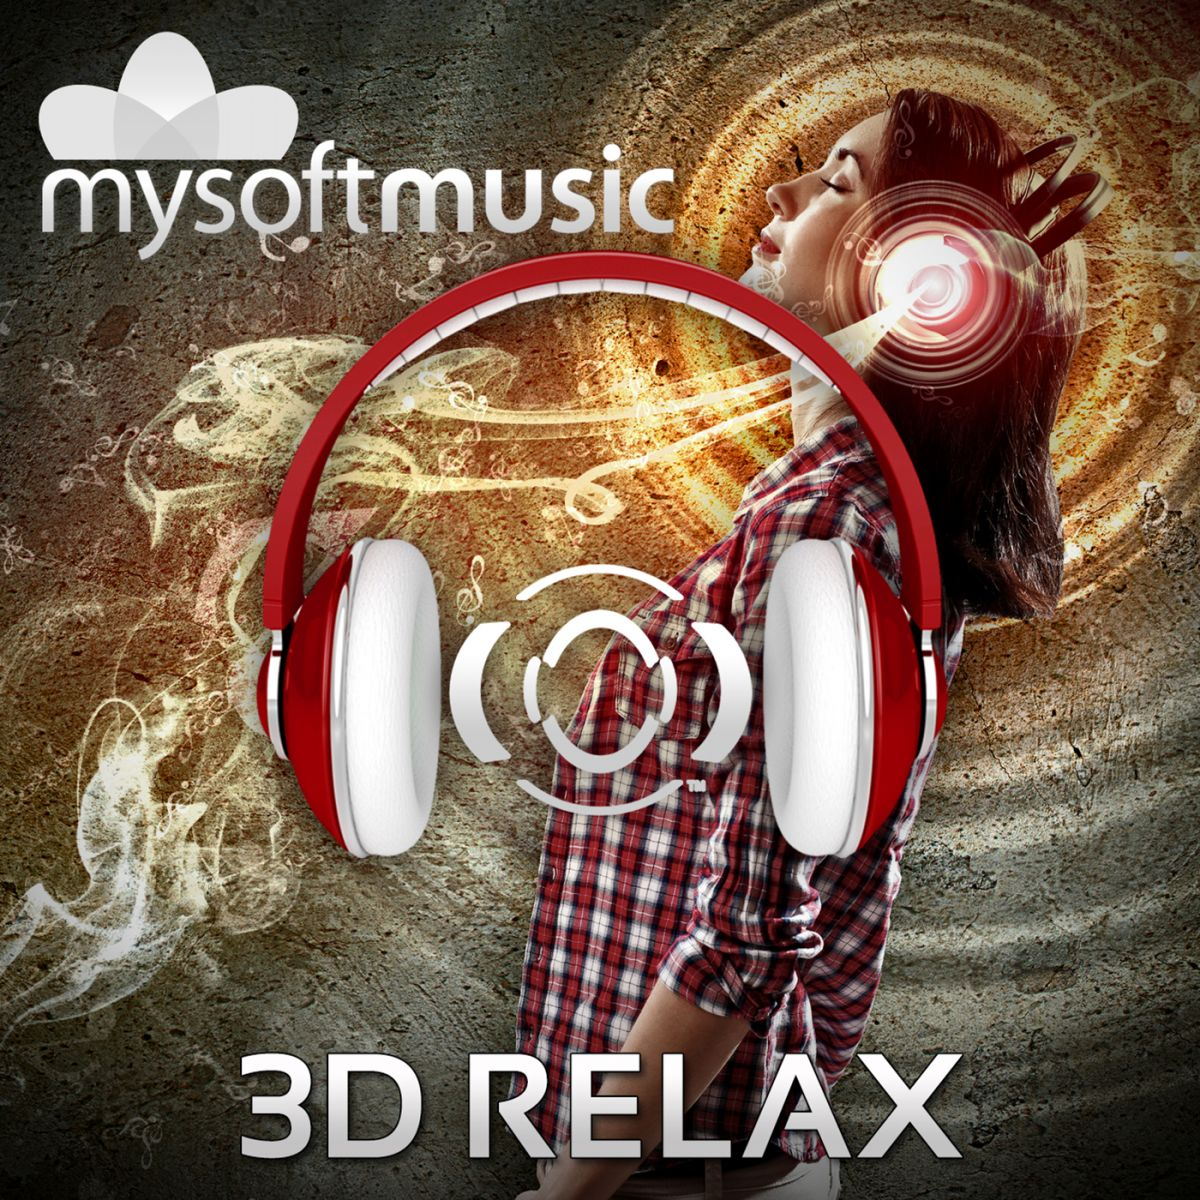 3D Relax music download mp3 | mysoftmusic